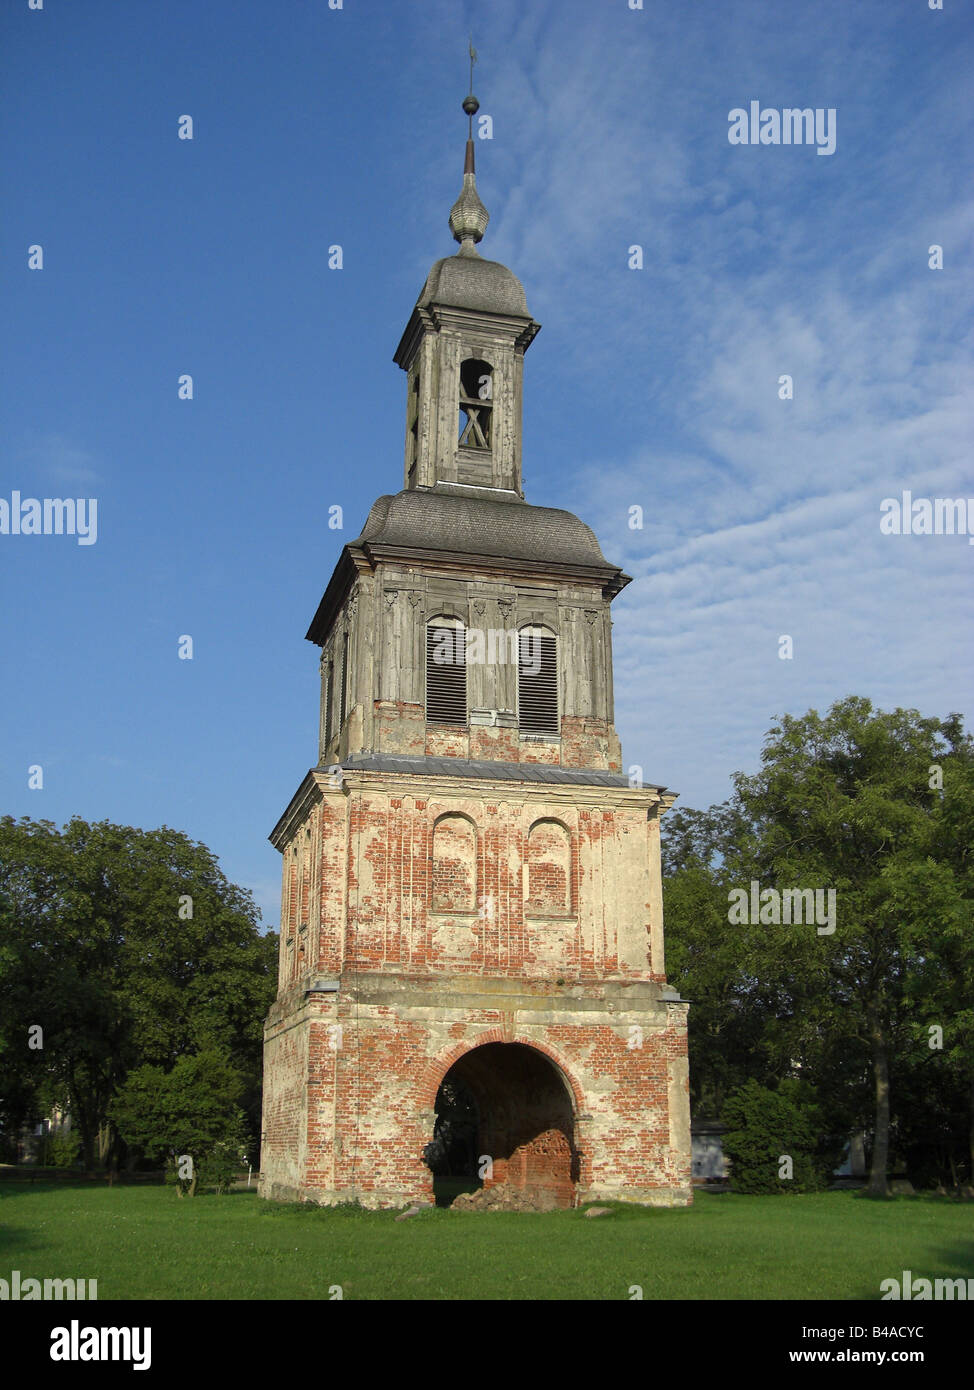 geography / travel, Germany, Mecklenburg-Western Pomerania, Remplin, castles, Remplin Castle, ruin of a tower, exterior - Stock Image